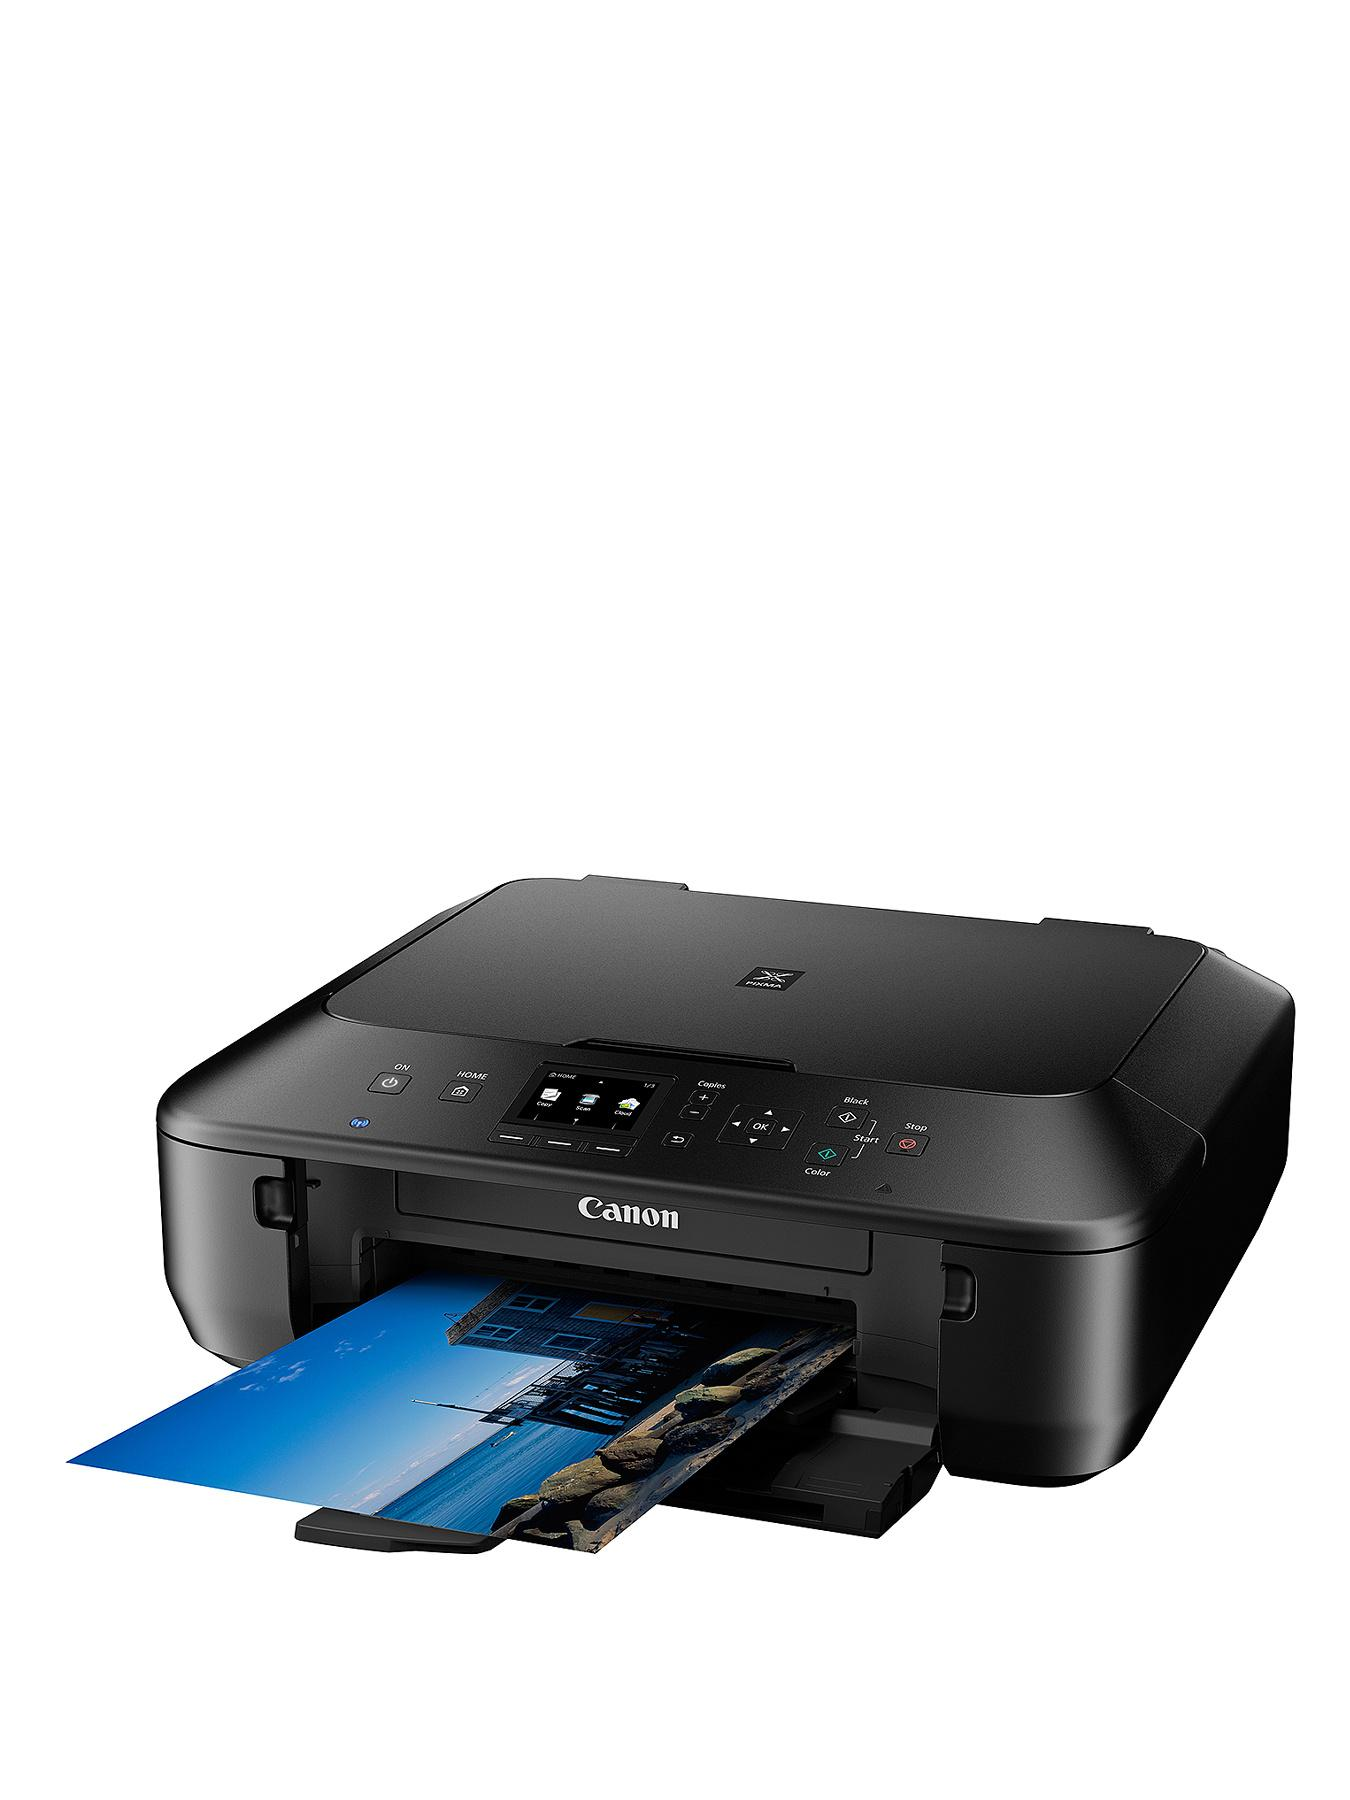 Canon Pixma MG5650 All in One Printer - Black